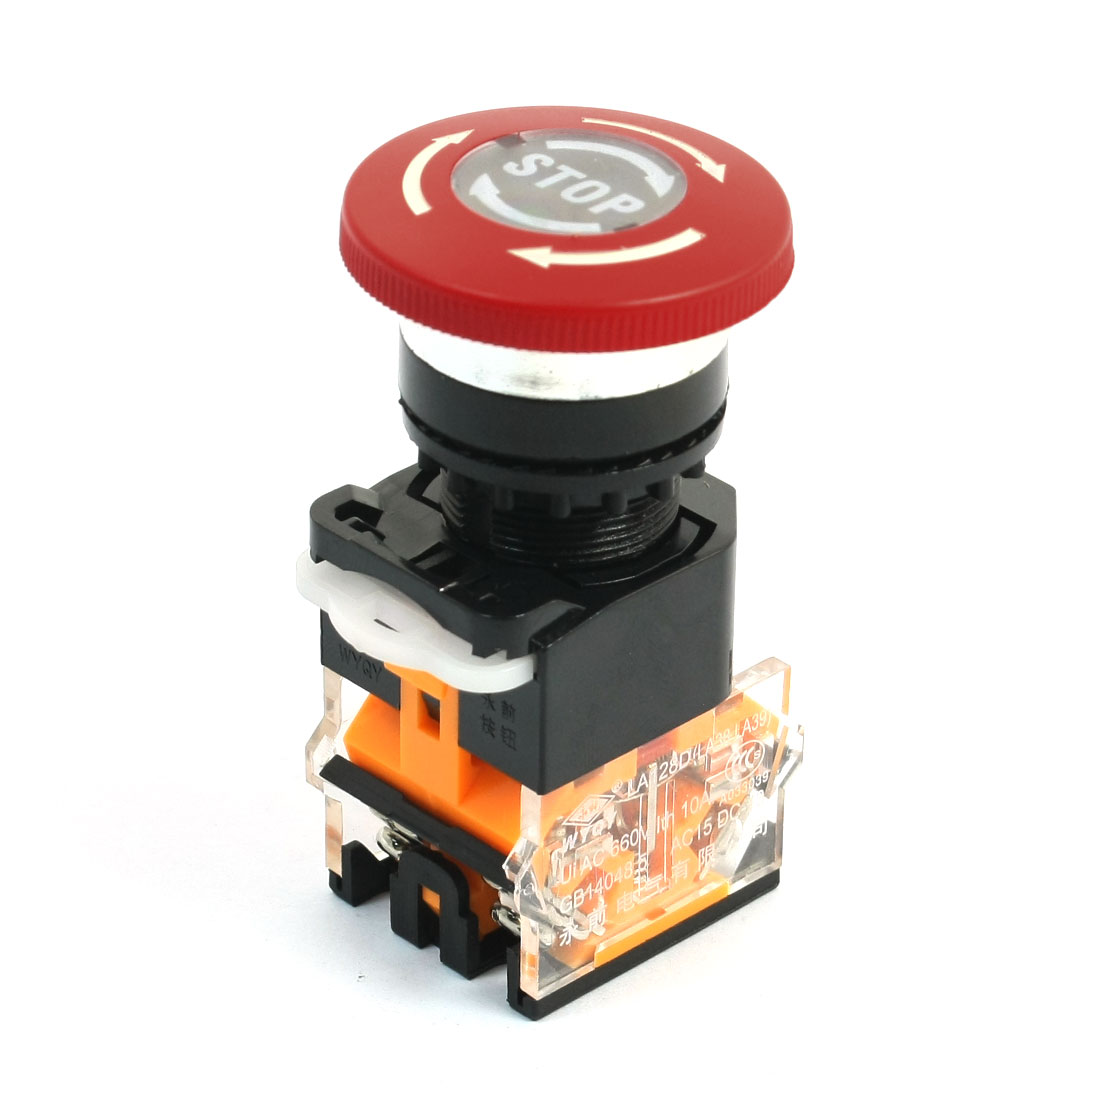 DPST Locking Emergency Stop Mushroom Head Control Pushbutton Switch AC 660V 10A